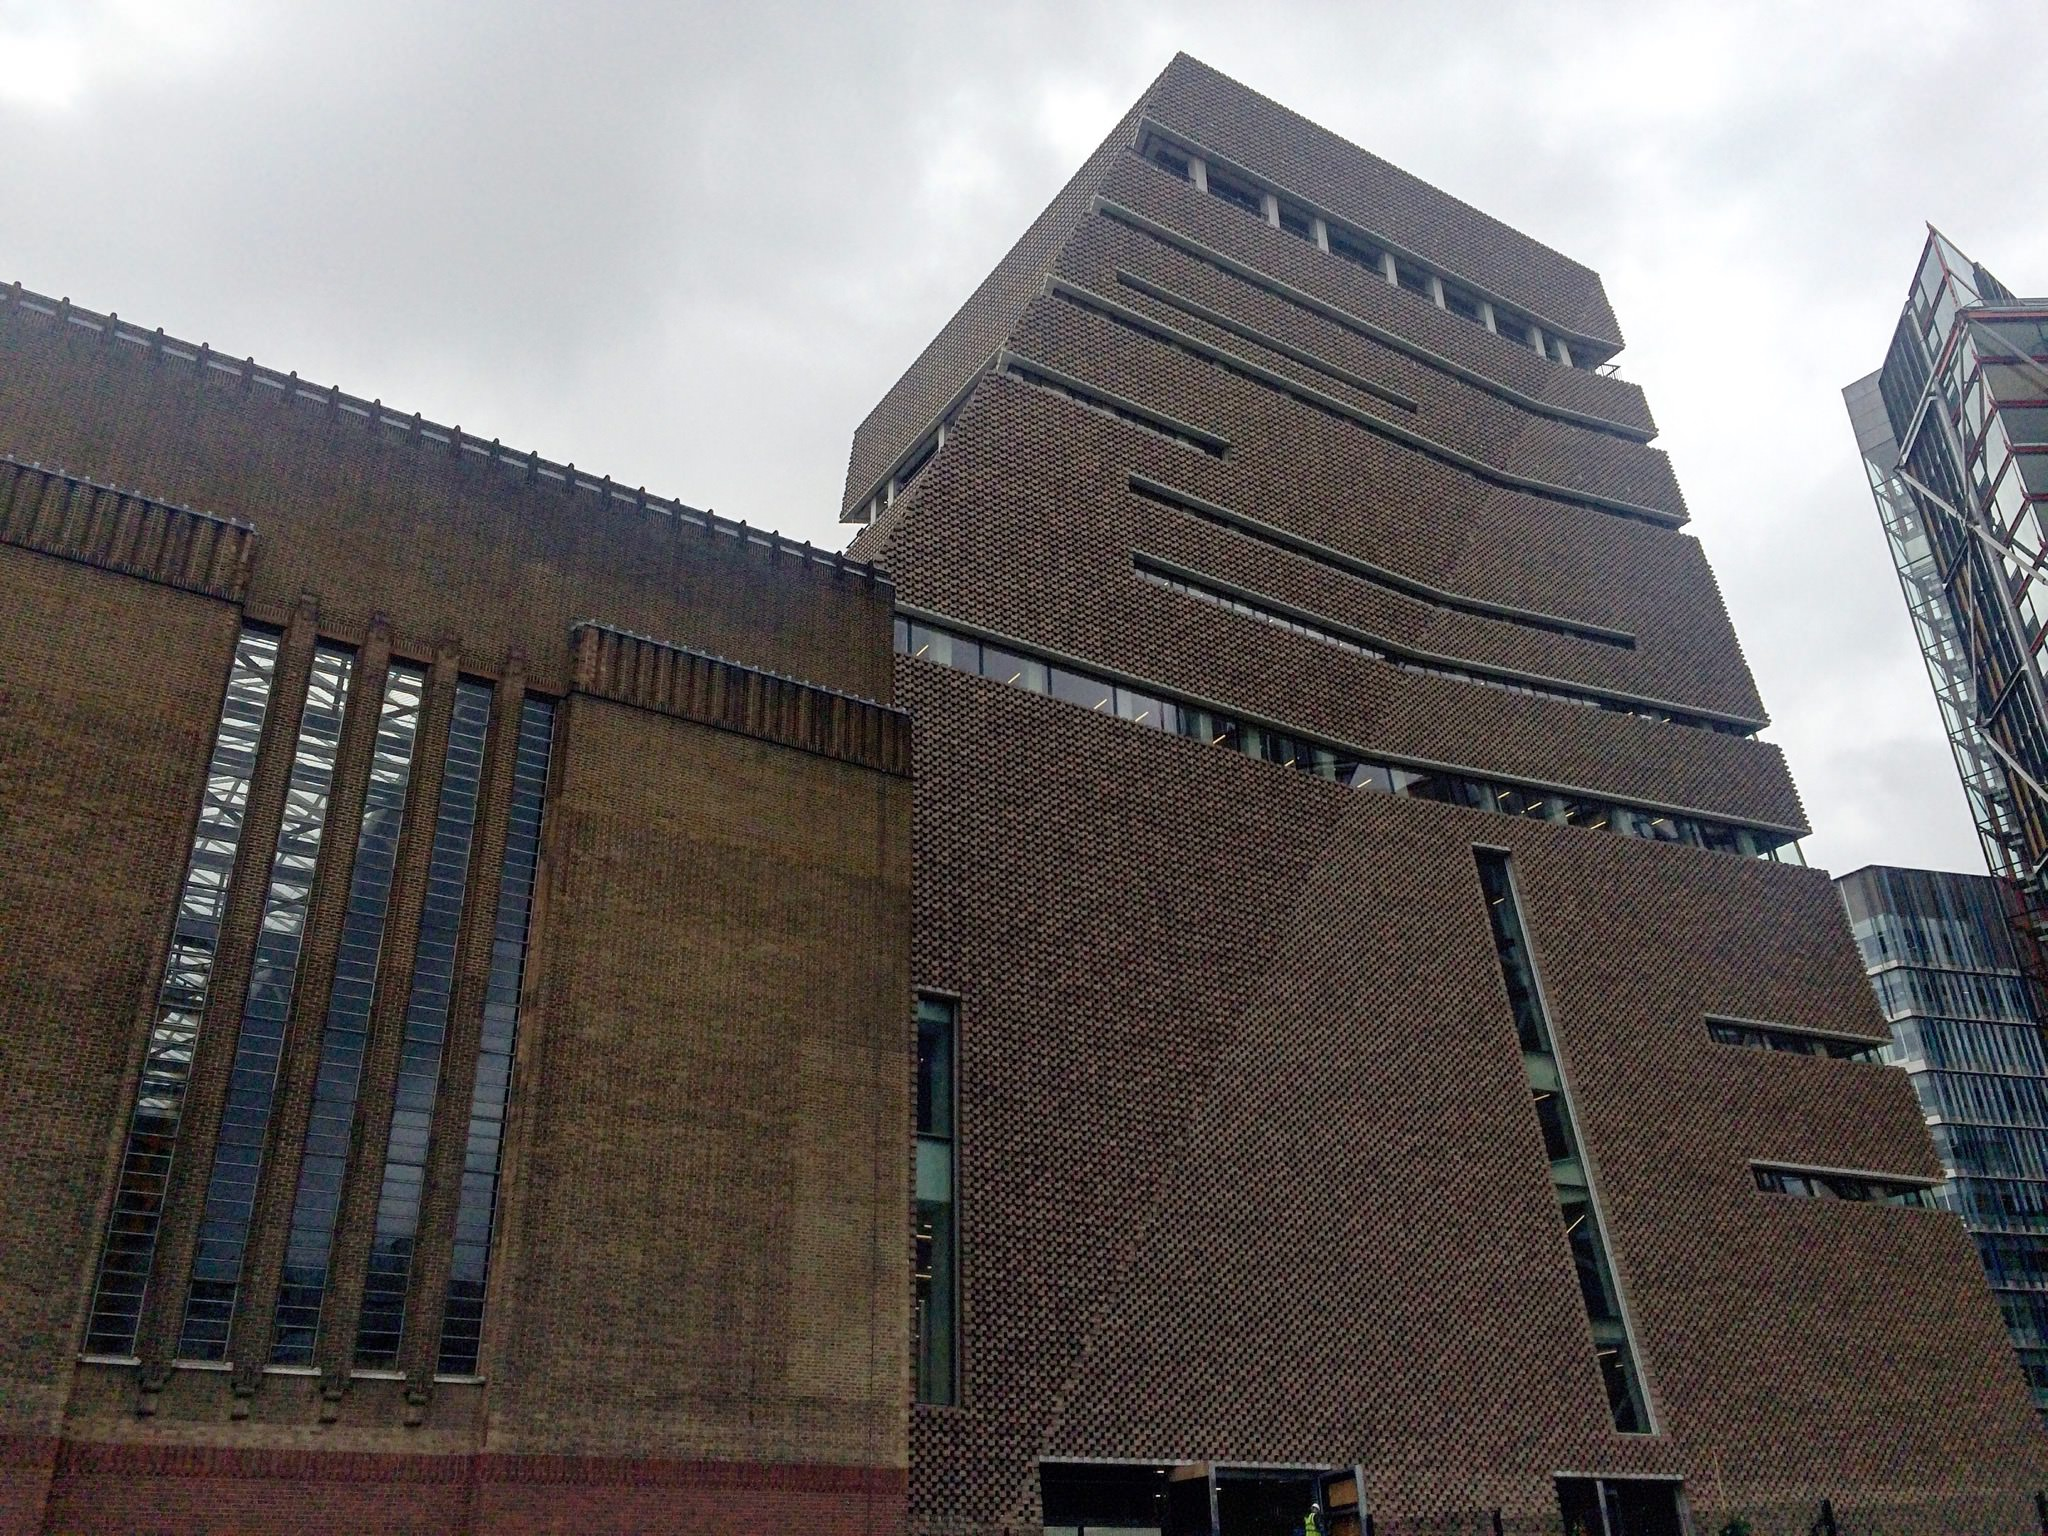 """Photo: Numéro   THE NEW TATE MODERN, BETWEEN STAR WARS AND BLADE RUNNER   Far from being a compacted bunker, the new wing is more like the monolith in 2001: A Space Odyssey. Its majesty evokes spiritual and religious monuments. Reaching into the sky, the building recalls the Tower of Babel, embodying a human culture determined to confront the gods. Or maybe a new Inca or Greek temple. It's certainly an edifice to the glory of Art, the new contemporary idol. But these backward looking references don't truly do this one-of-a-kind architectural object justice. A crooked object that seems to be in perpetual motion as if under the impetus of high-tech electronic mechanics transforming its appearance like a Rubik's Cube. The imagination convened on this site is pure science fiction. The new Tate Modern is a spaceship from the Star Wars Empire. Better than that, a building straight out Ridley Scott's Blade Runner.   """"The exterior shape of the building is as mysterious as it is confusing."""" Architect Jacques Herzog  At night fall the interior light escapes through the pierced façade accentuating our impression of being faced with an intergalactic cruiser. For Jacques Herzog, """"The exterior shape of the building is as mysterious as it is confusing and yet it results from a very rational geometric interpretation of the surrounding streets in the neighbourhood. The arising volumes remind us of a pyramid, but also a tent. It's open to interpretation."""""""